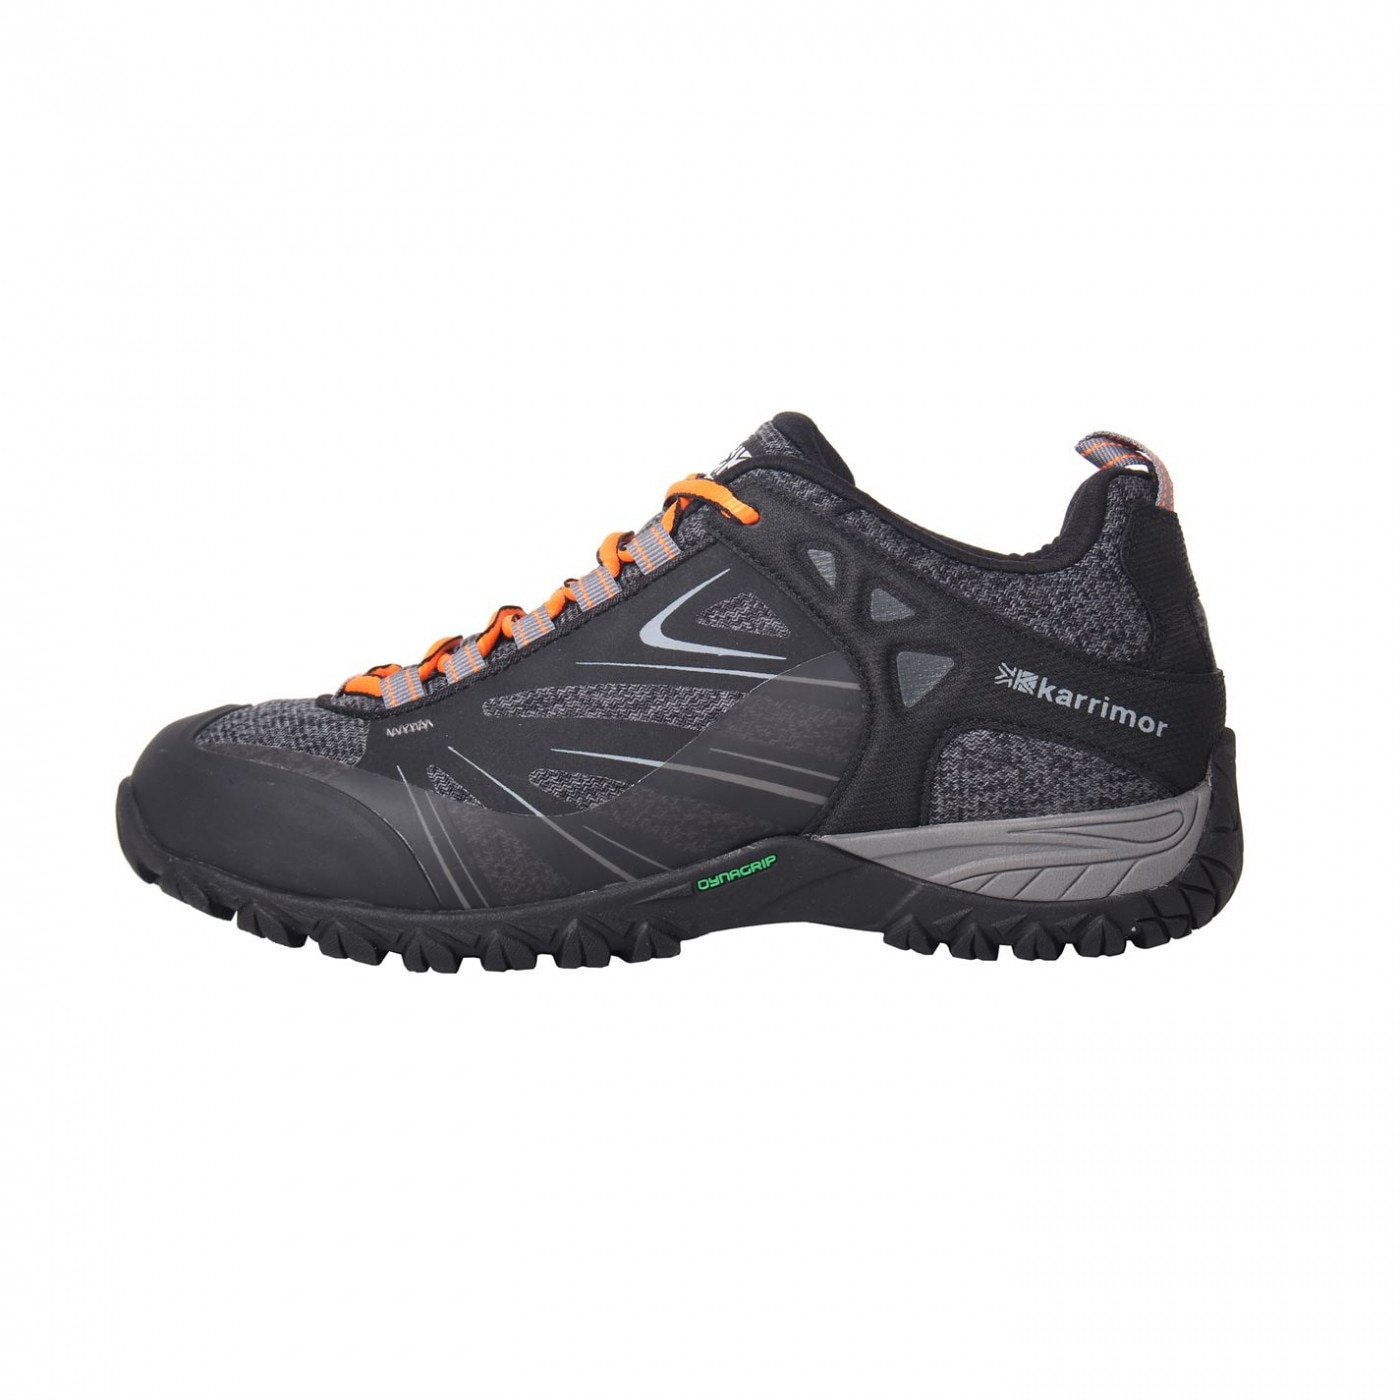 Karrimor Malvern Mens Walking Shoes